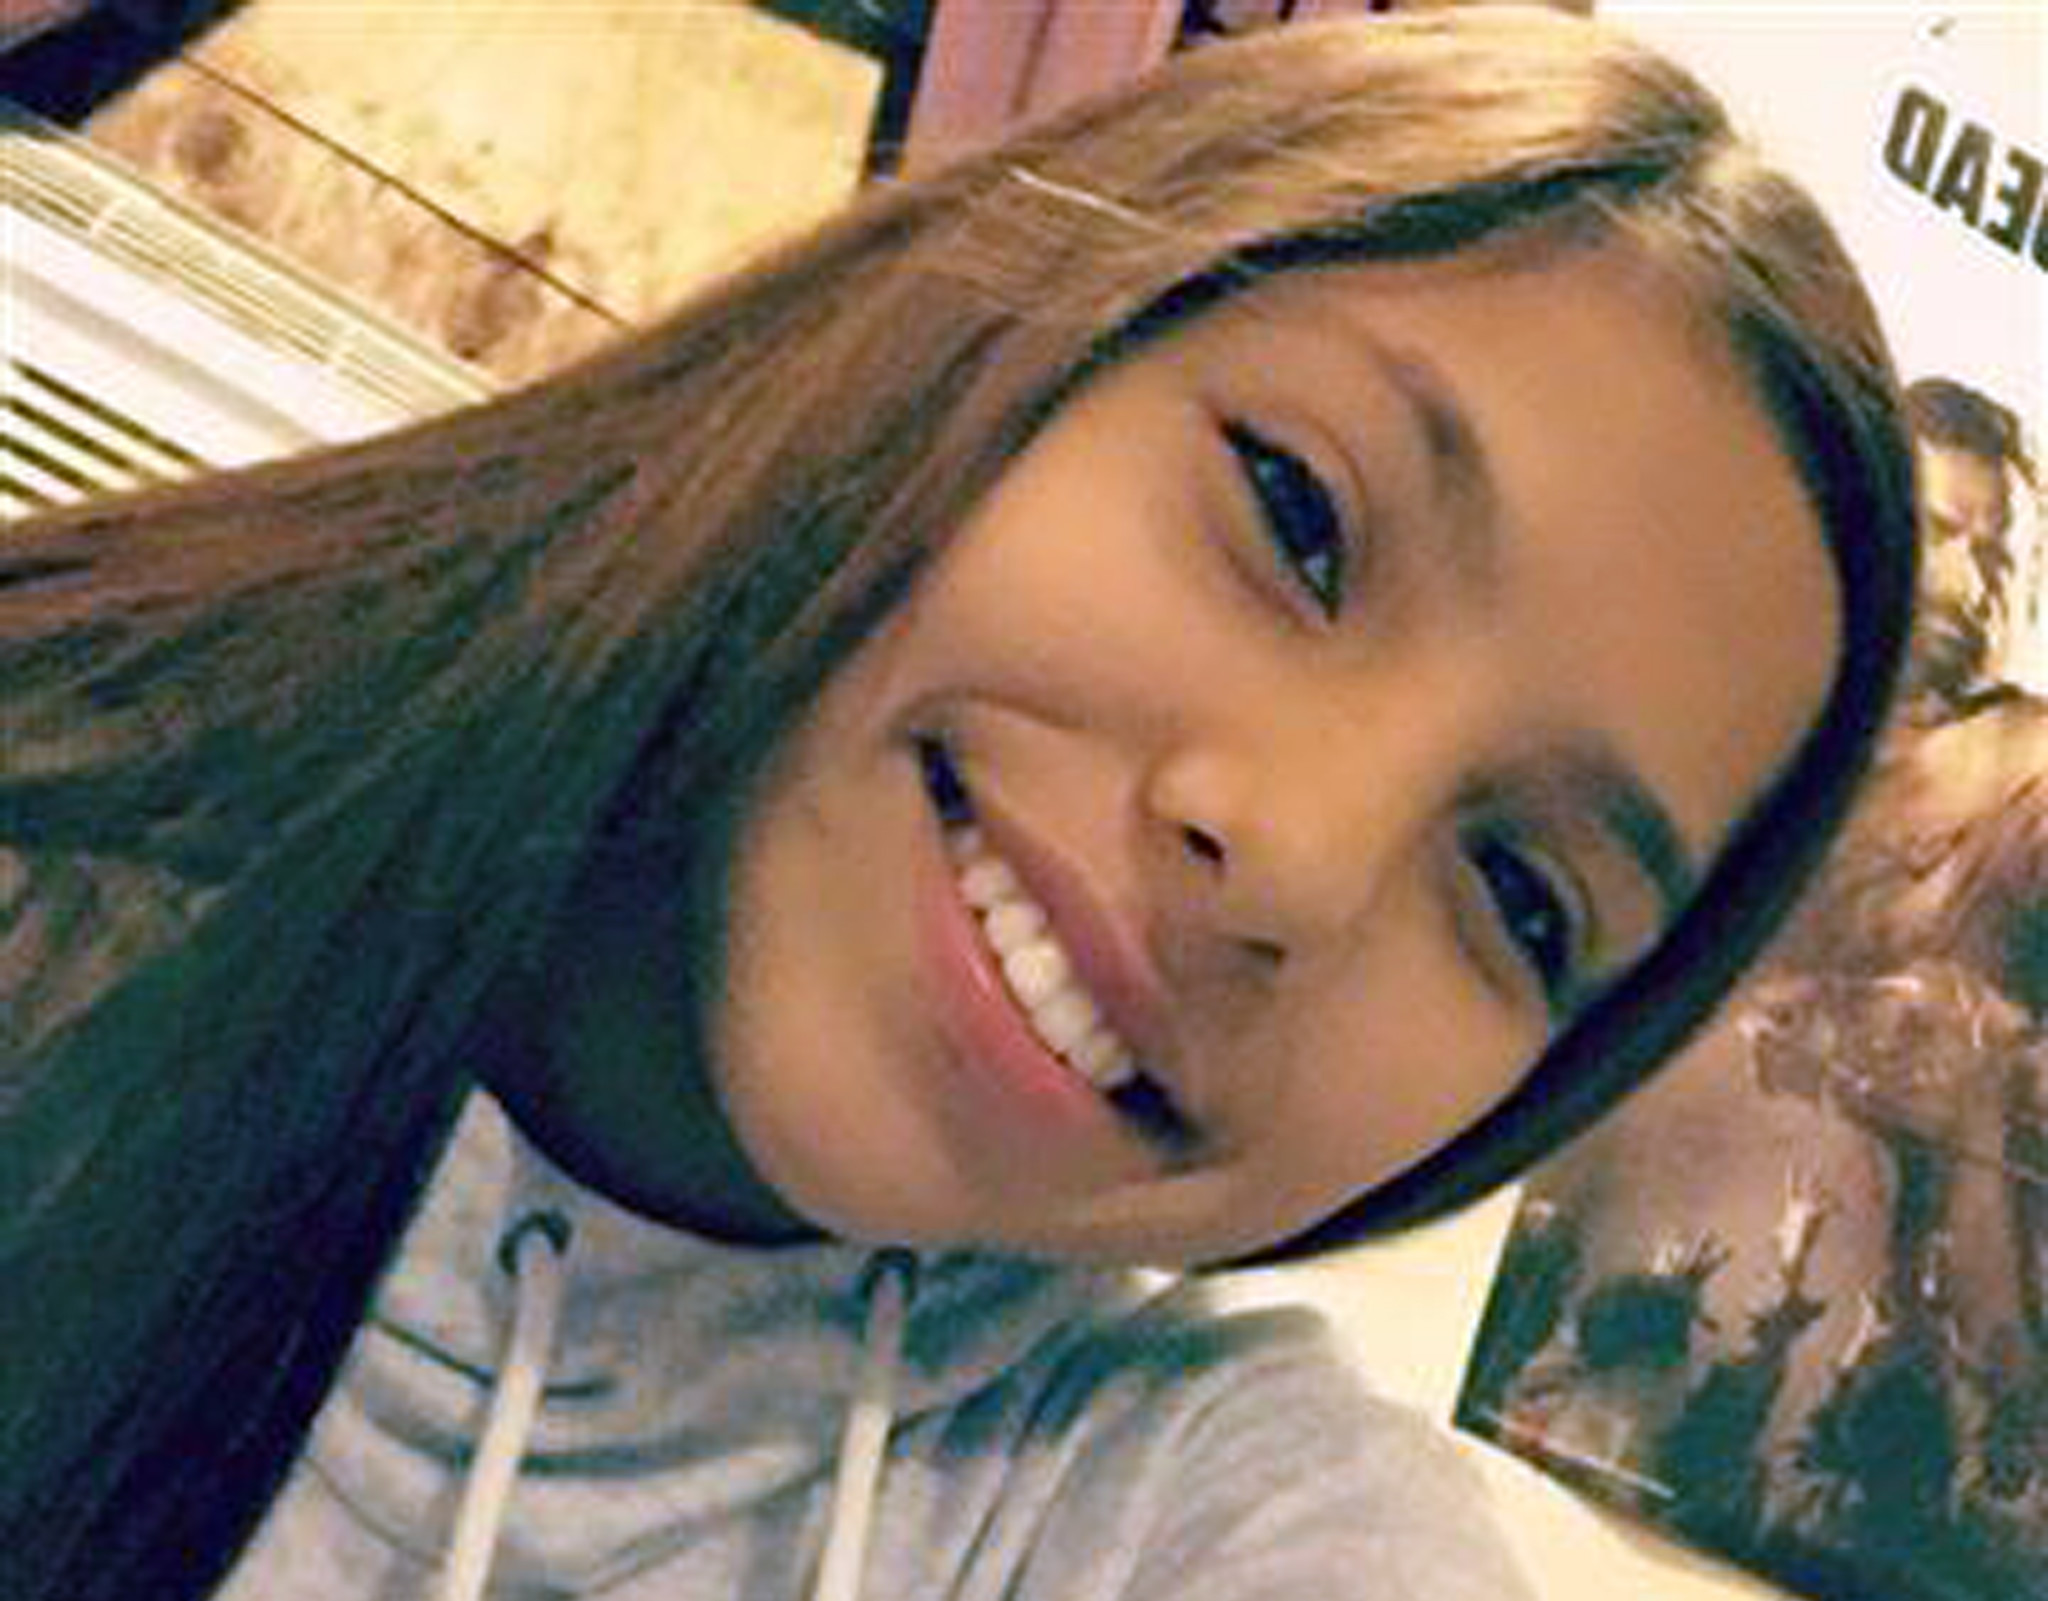 Search for Native American teen missing in Montana since New Year's Day ends in 'great sadness'